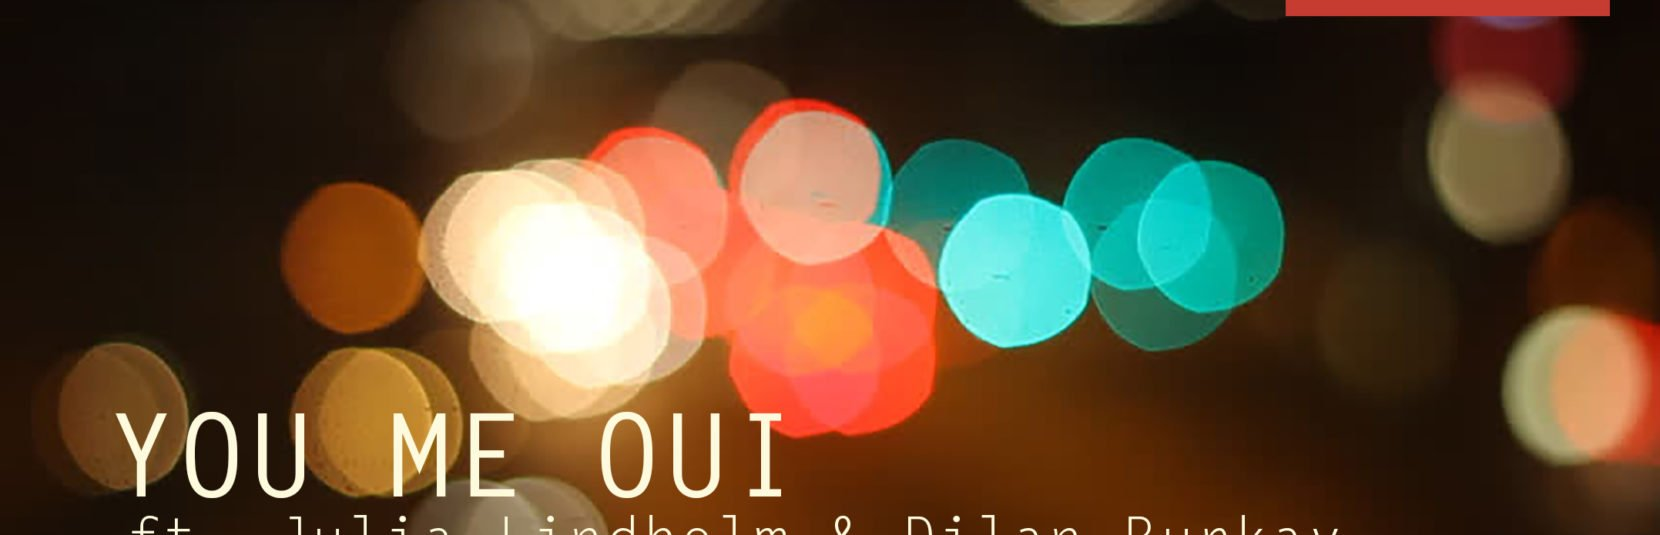 You Me Oui: ft. Julia Lindholm och Dilan Burkay at Hobo